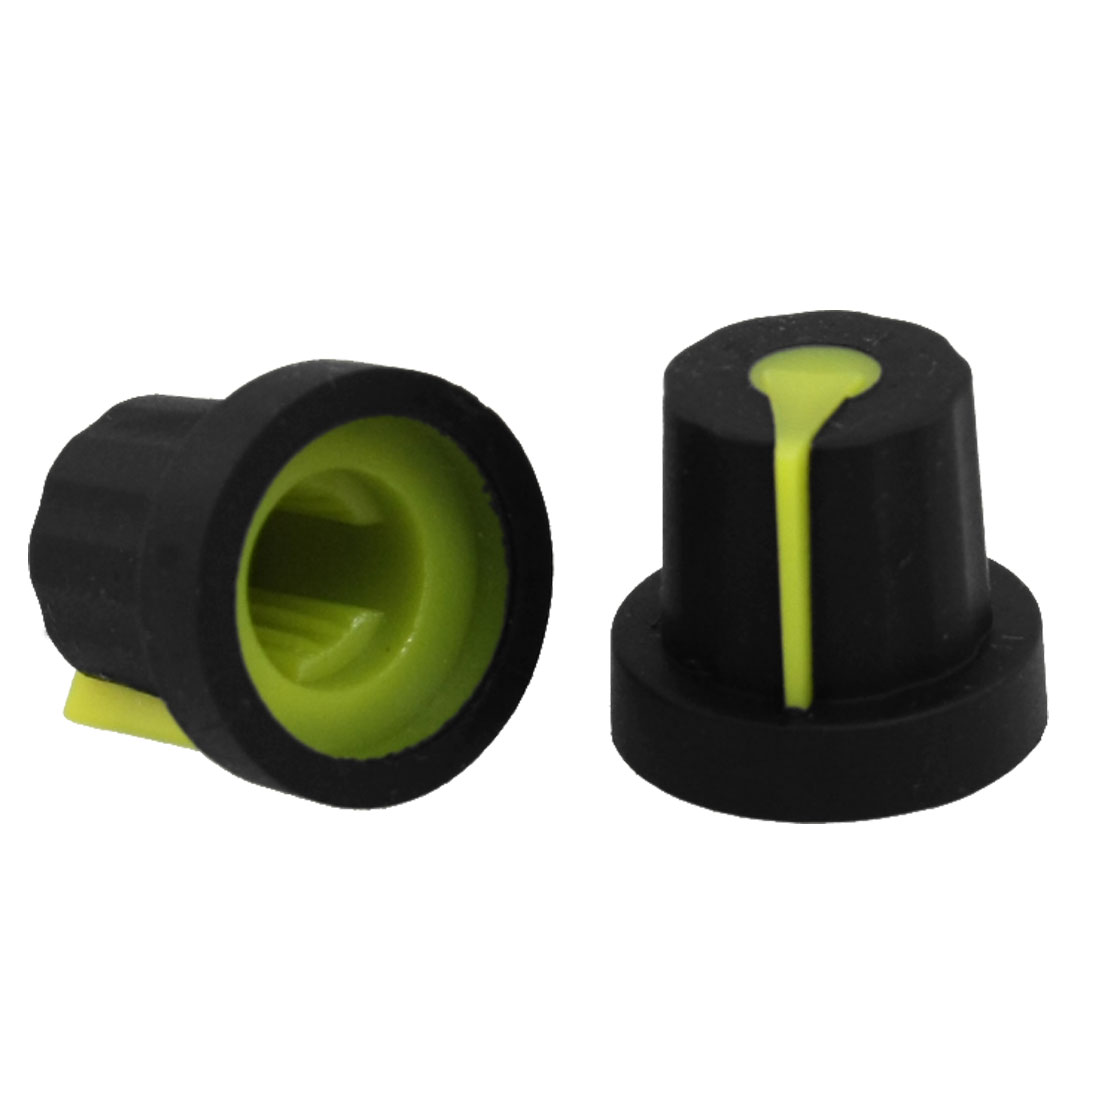 10 Pcs Rubber Coated Plastic Knurled Grip Potentiometer Knobs Black Yellow